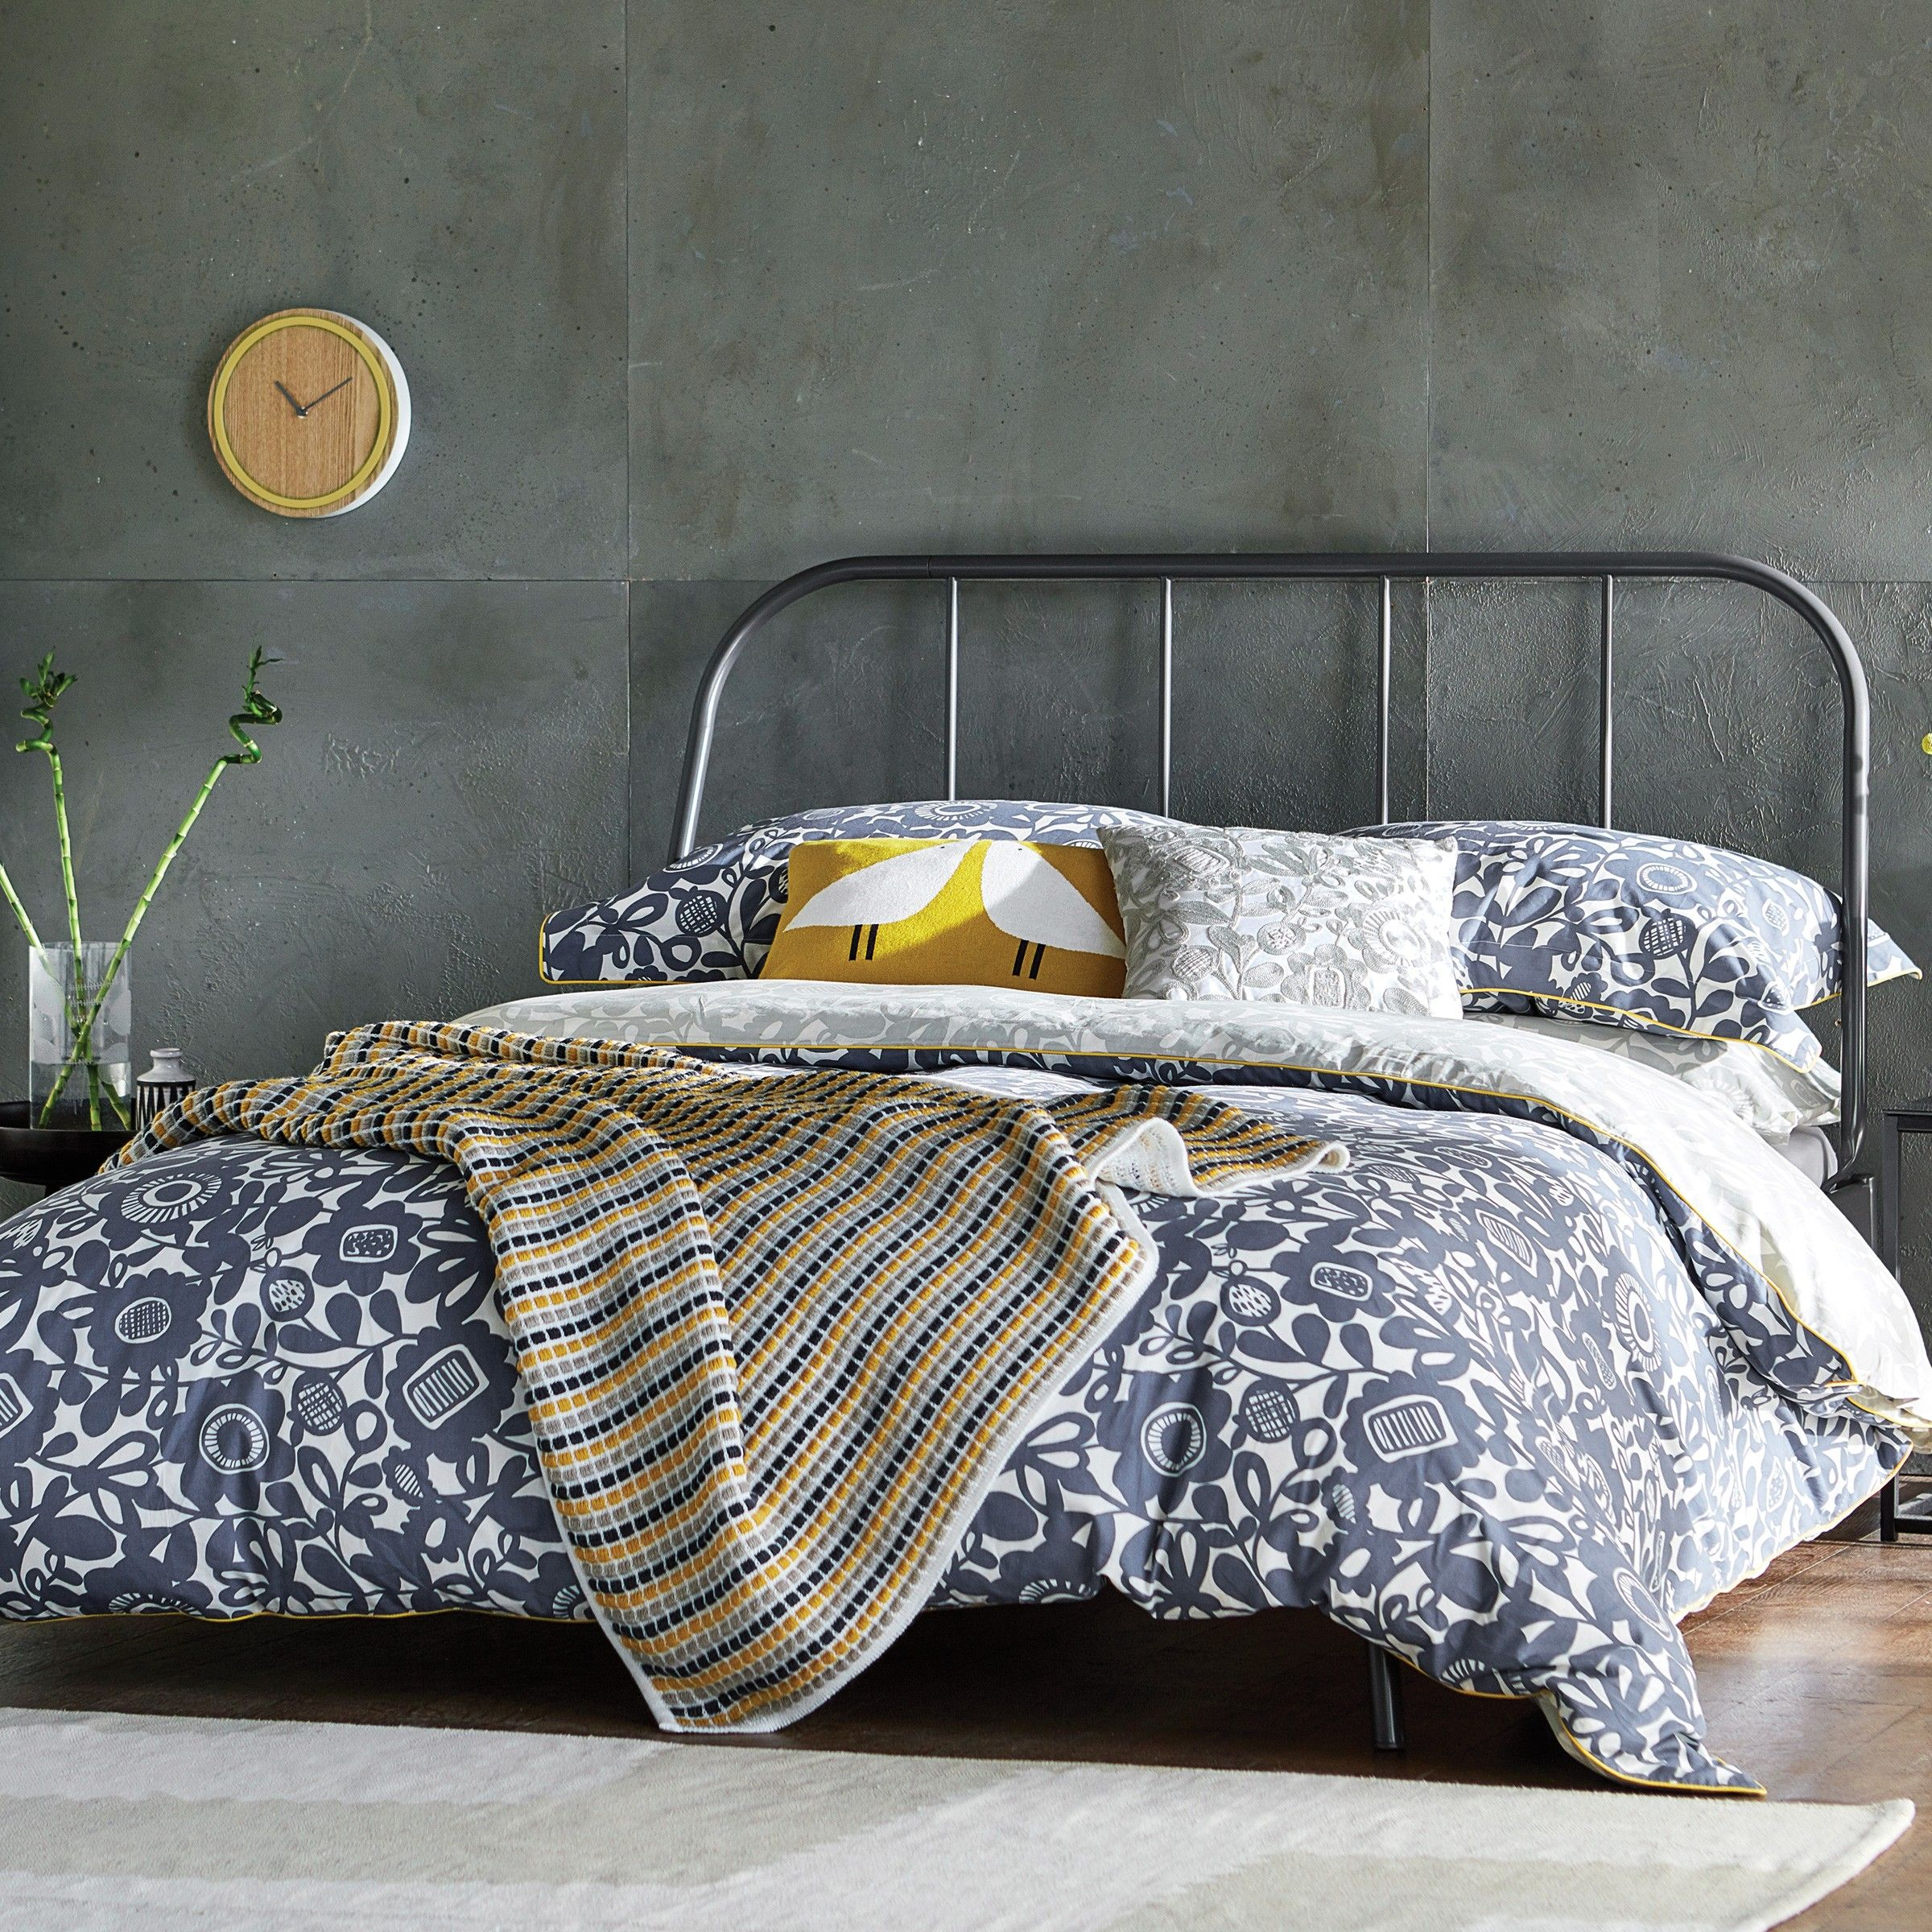 Pin by Katie Mcleod on Wedding list Gray duvet cover